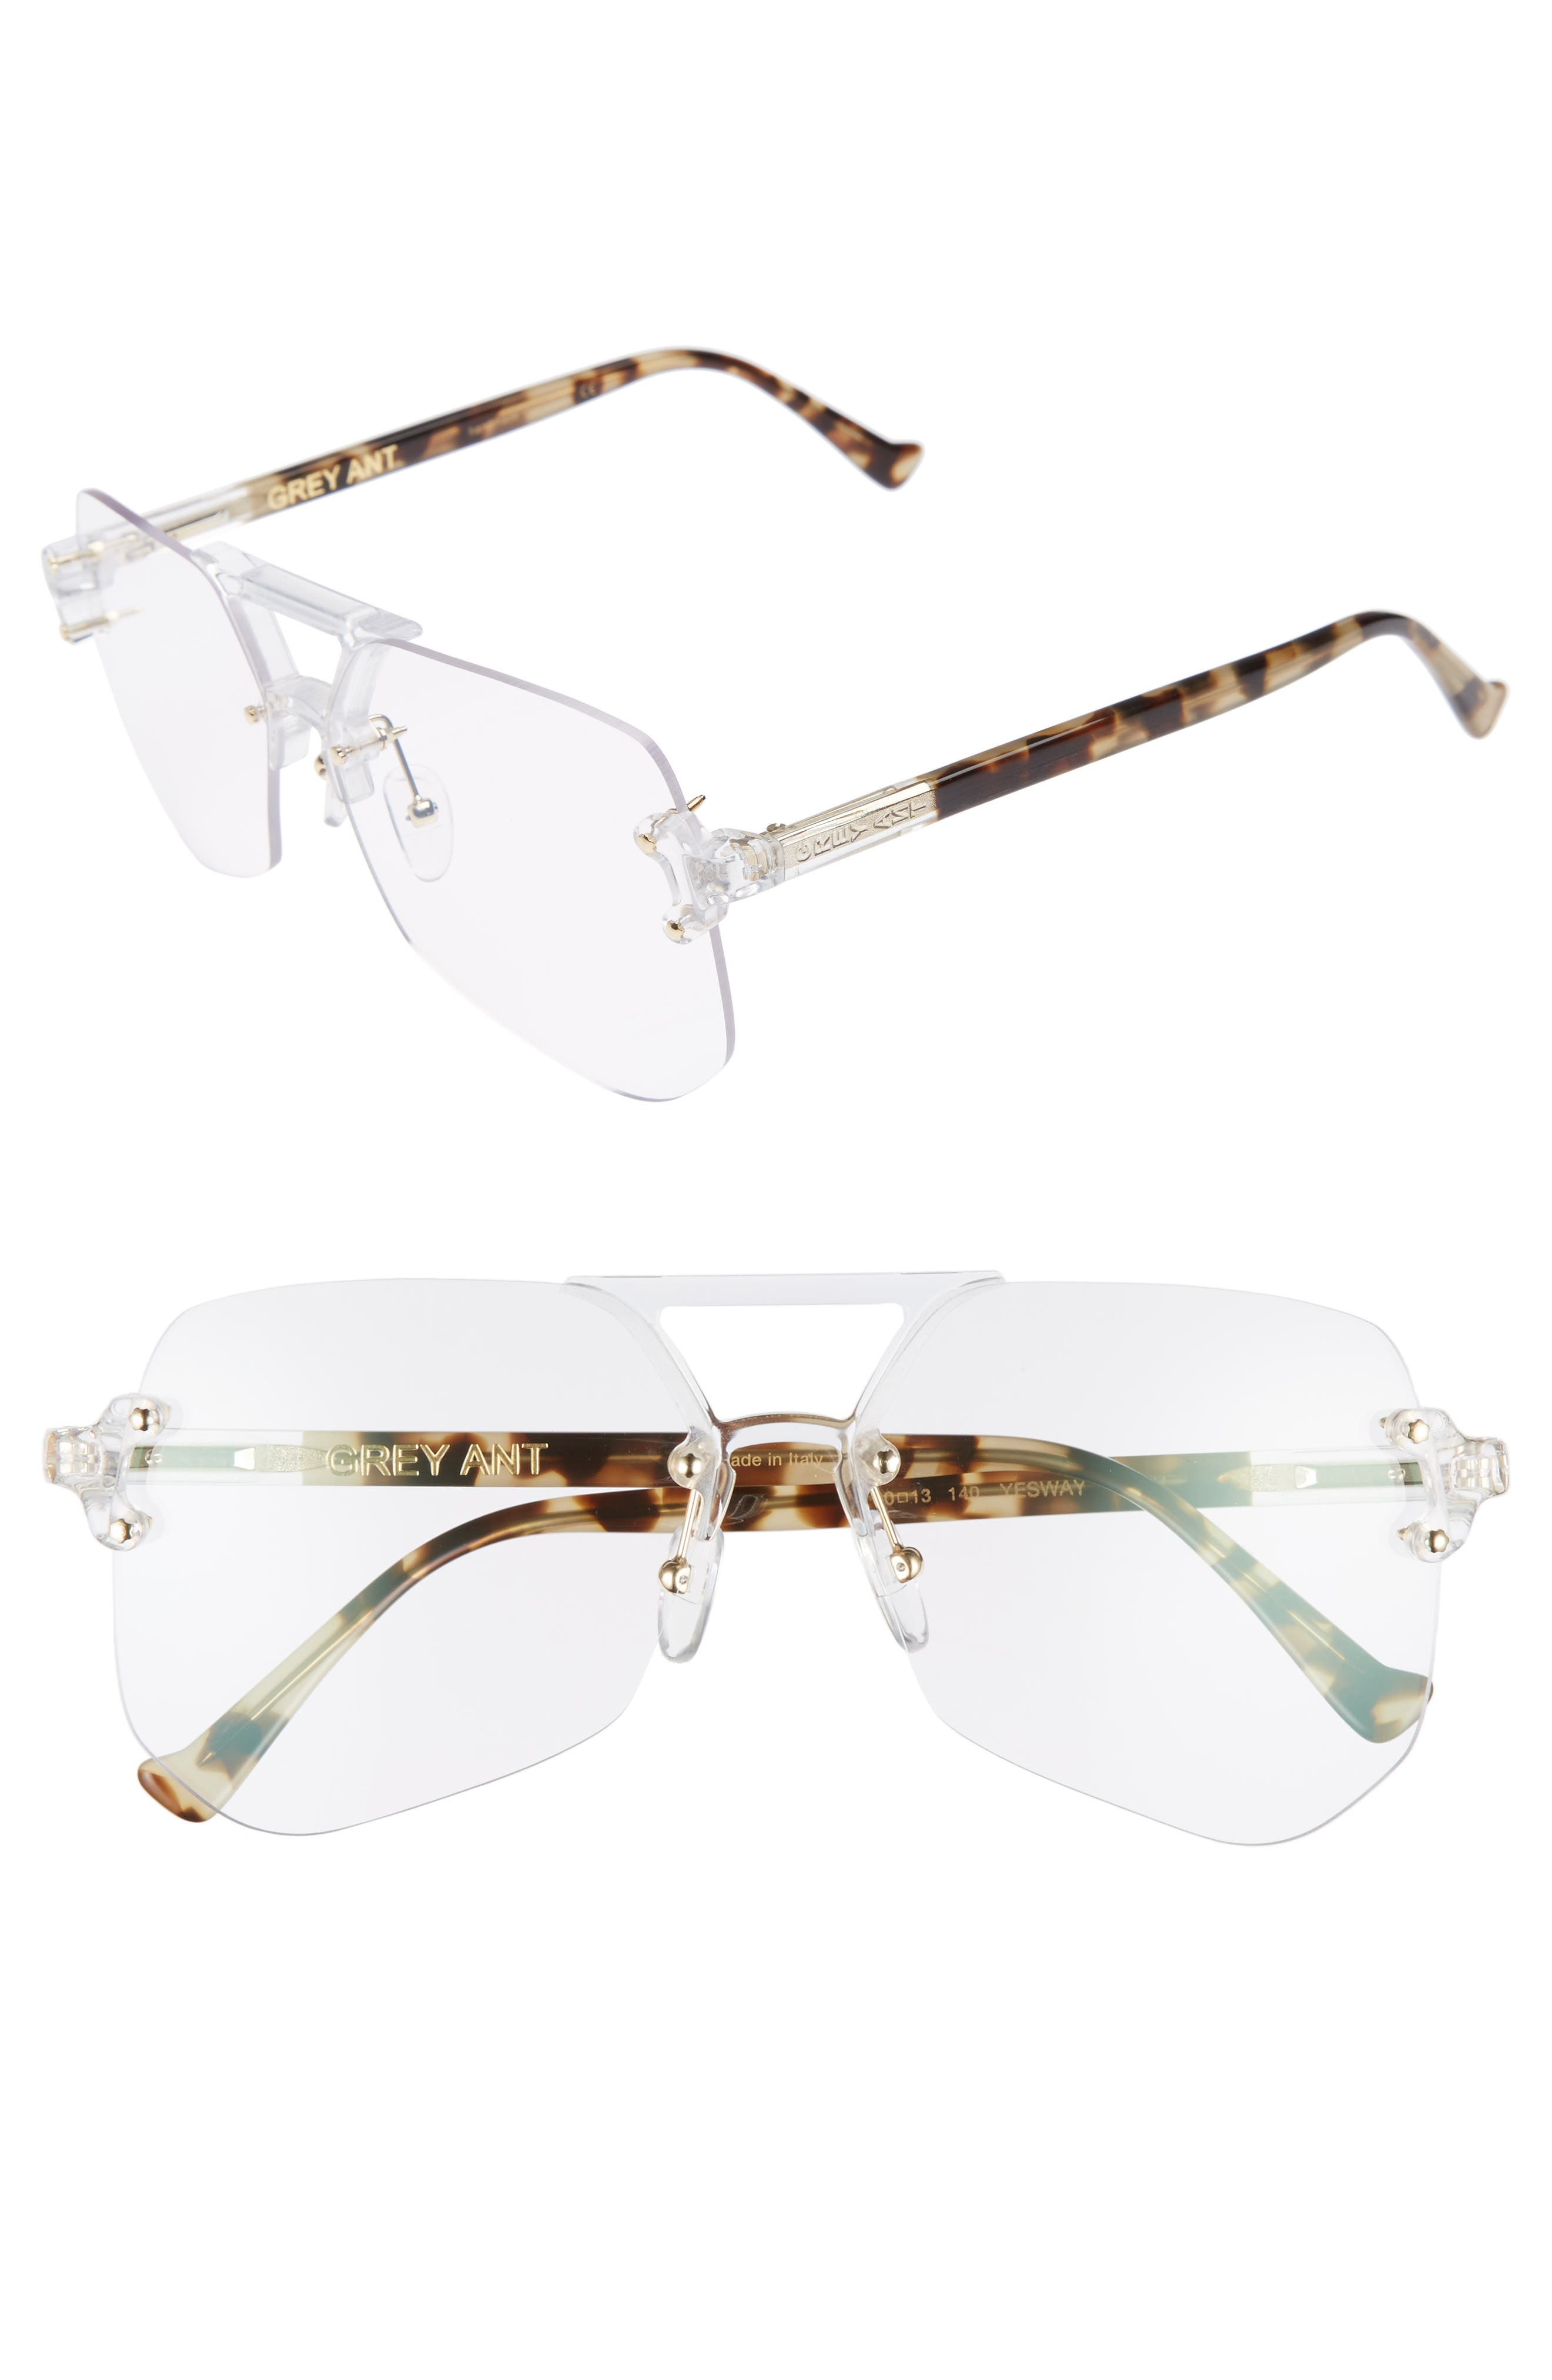 Yesway 60mm Optical Glasses,                         Main,                         color, Gold / Tortoise